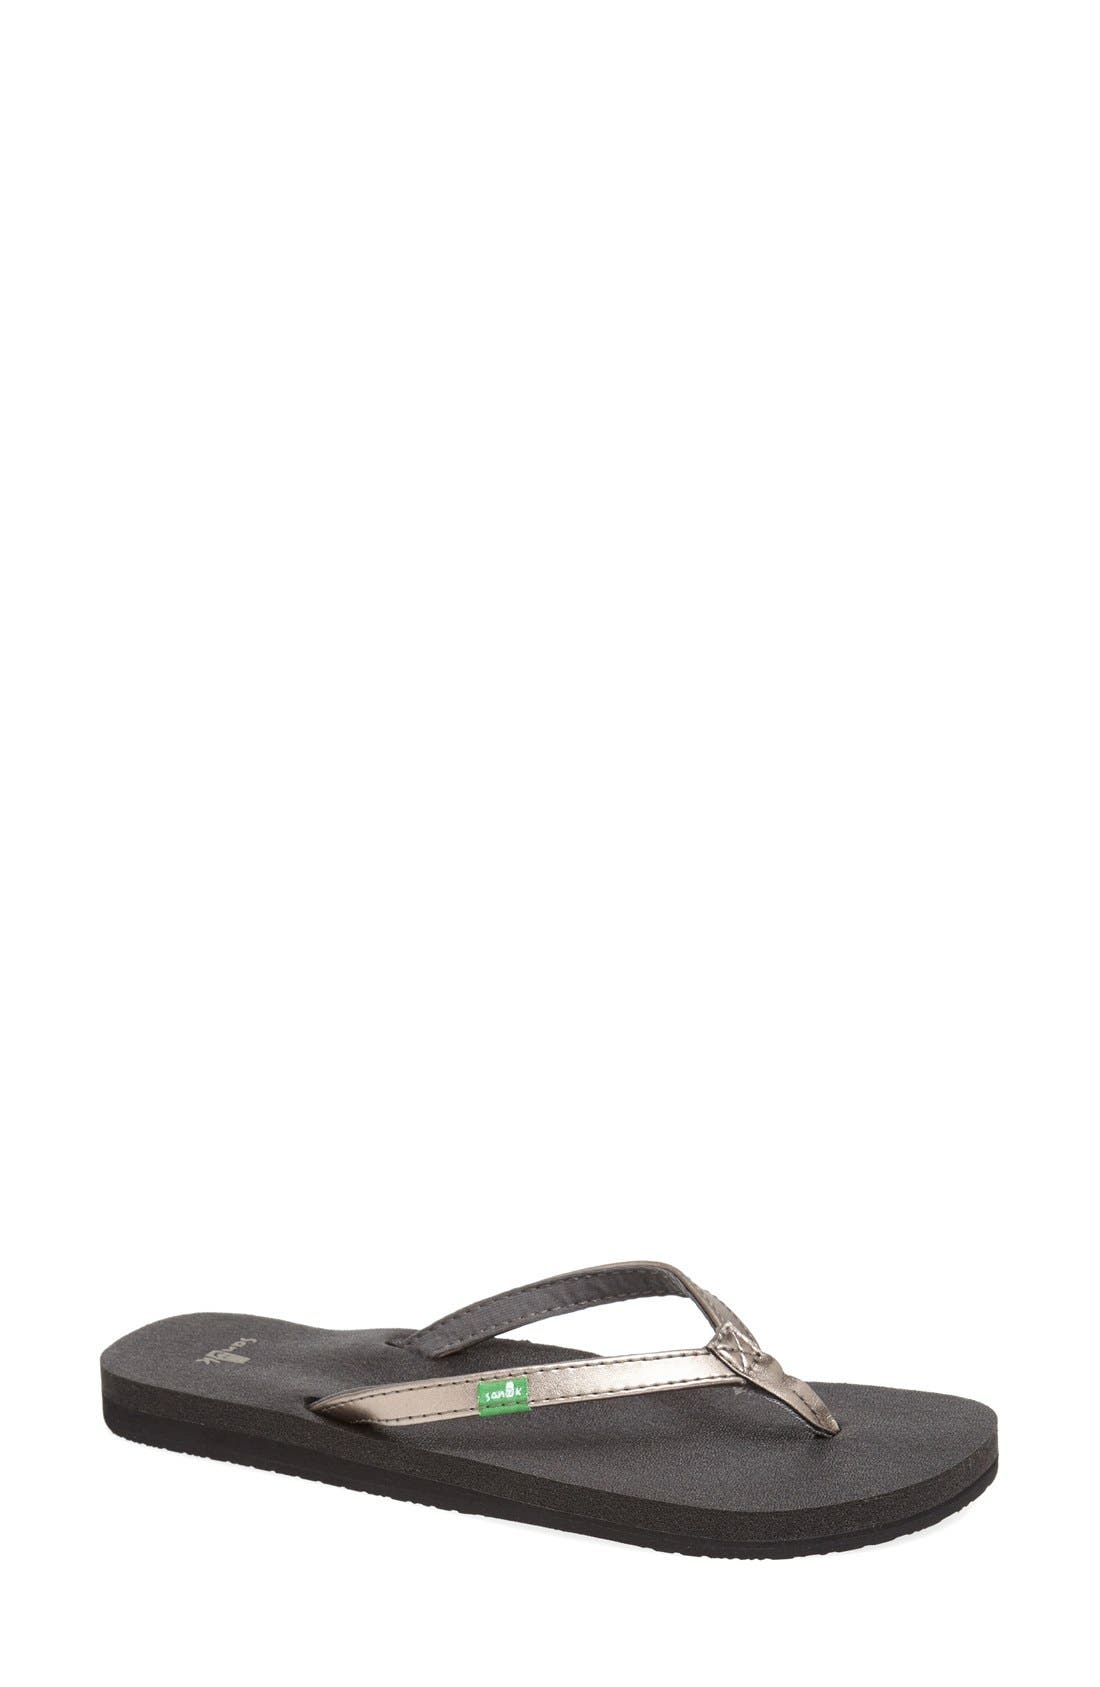 'Yoga Joy' Metallic Flip Flop,                         Main,                         color, Pewter